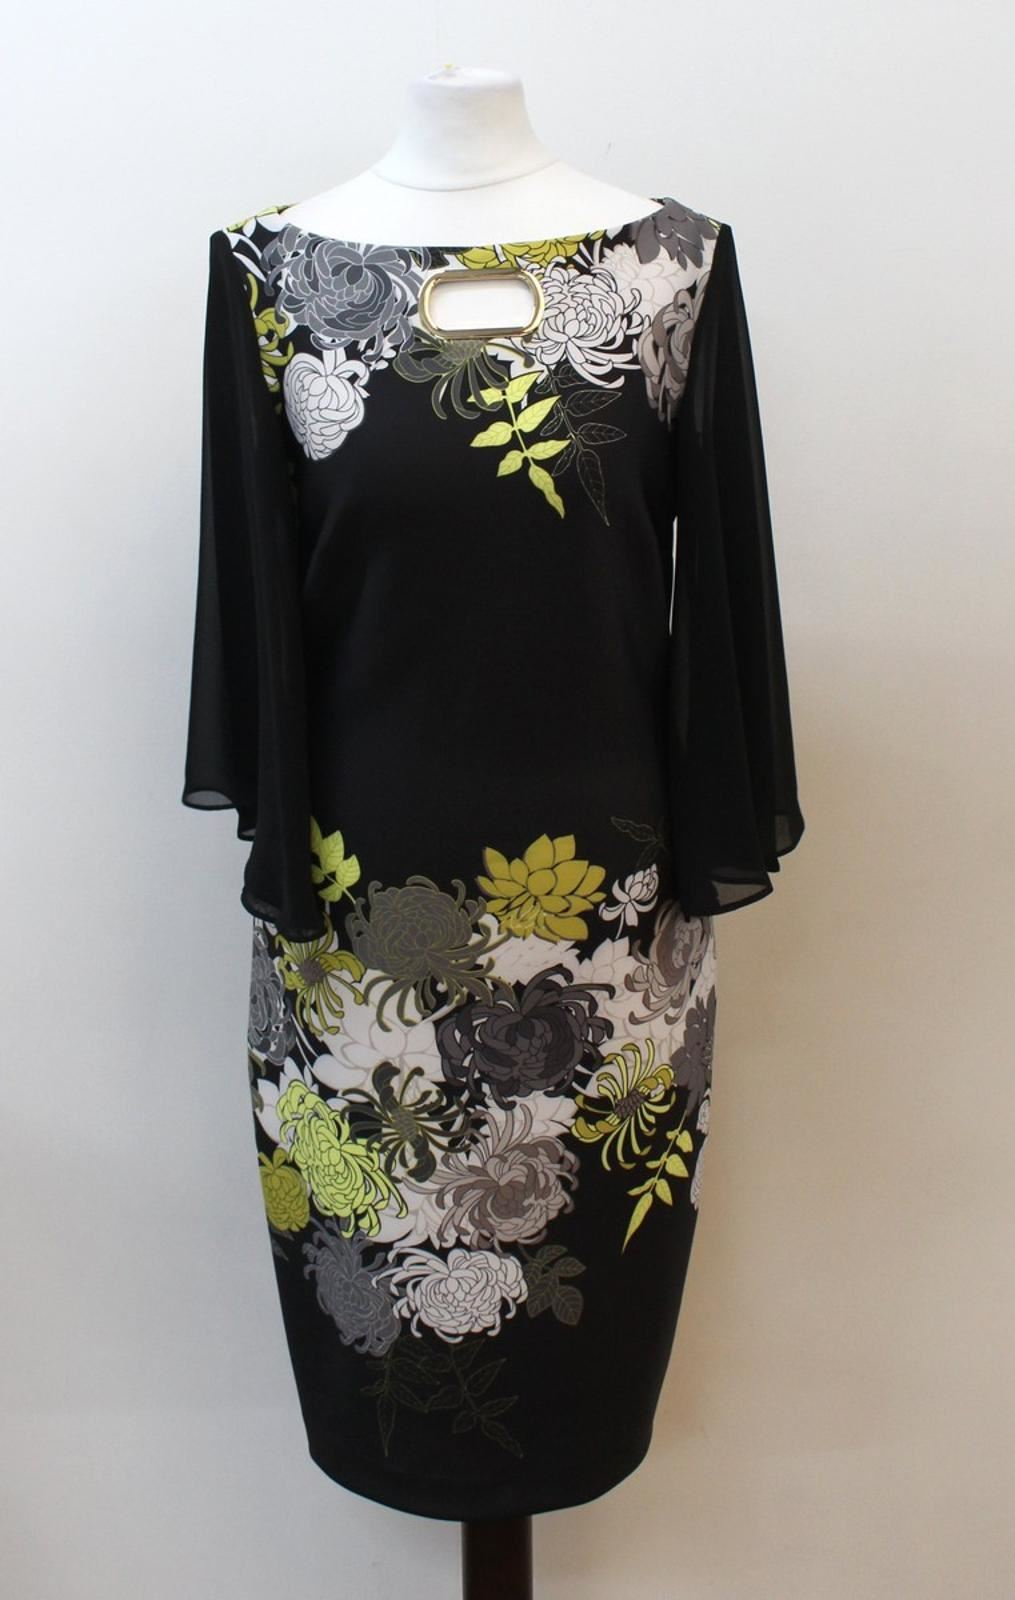 JOSEPH-RIBKOFF-Ladies-Black-3-4-Sheer-Sleeve-Floral-Print-Dress-UK10-EU38-BNWT